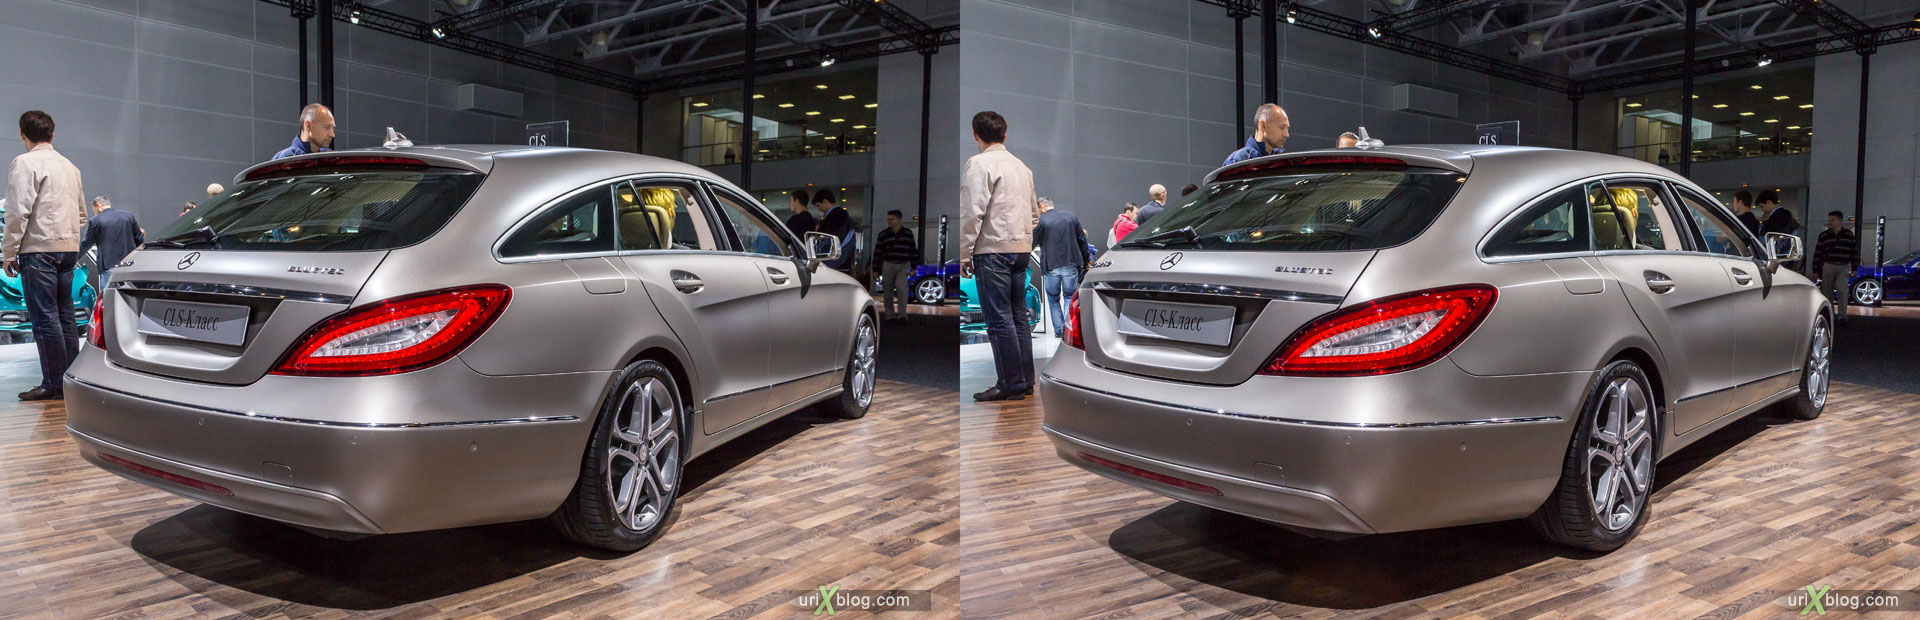 Mercedes-Benz Bluetec, Moscow International Automobile Salon 2014, MIAS 2014, girls, models, Crocus Expo, Moscow, Russia, 3D, stereo pair, cross-eyed, crossview, cross view stereo pair, stereoscopic, 2014